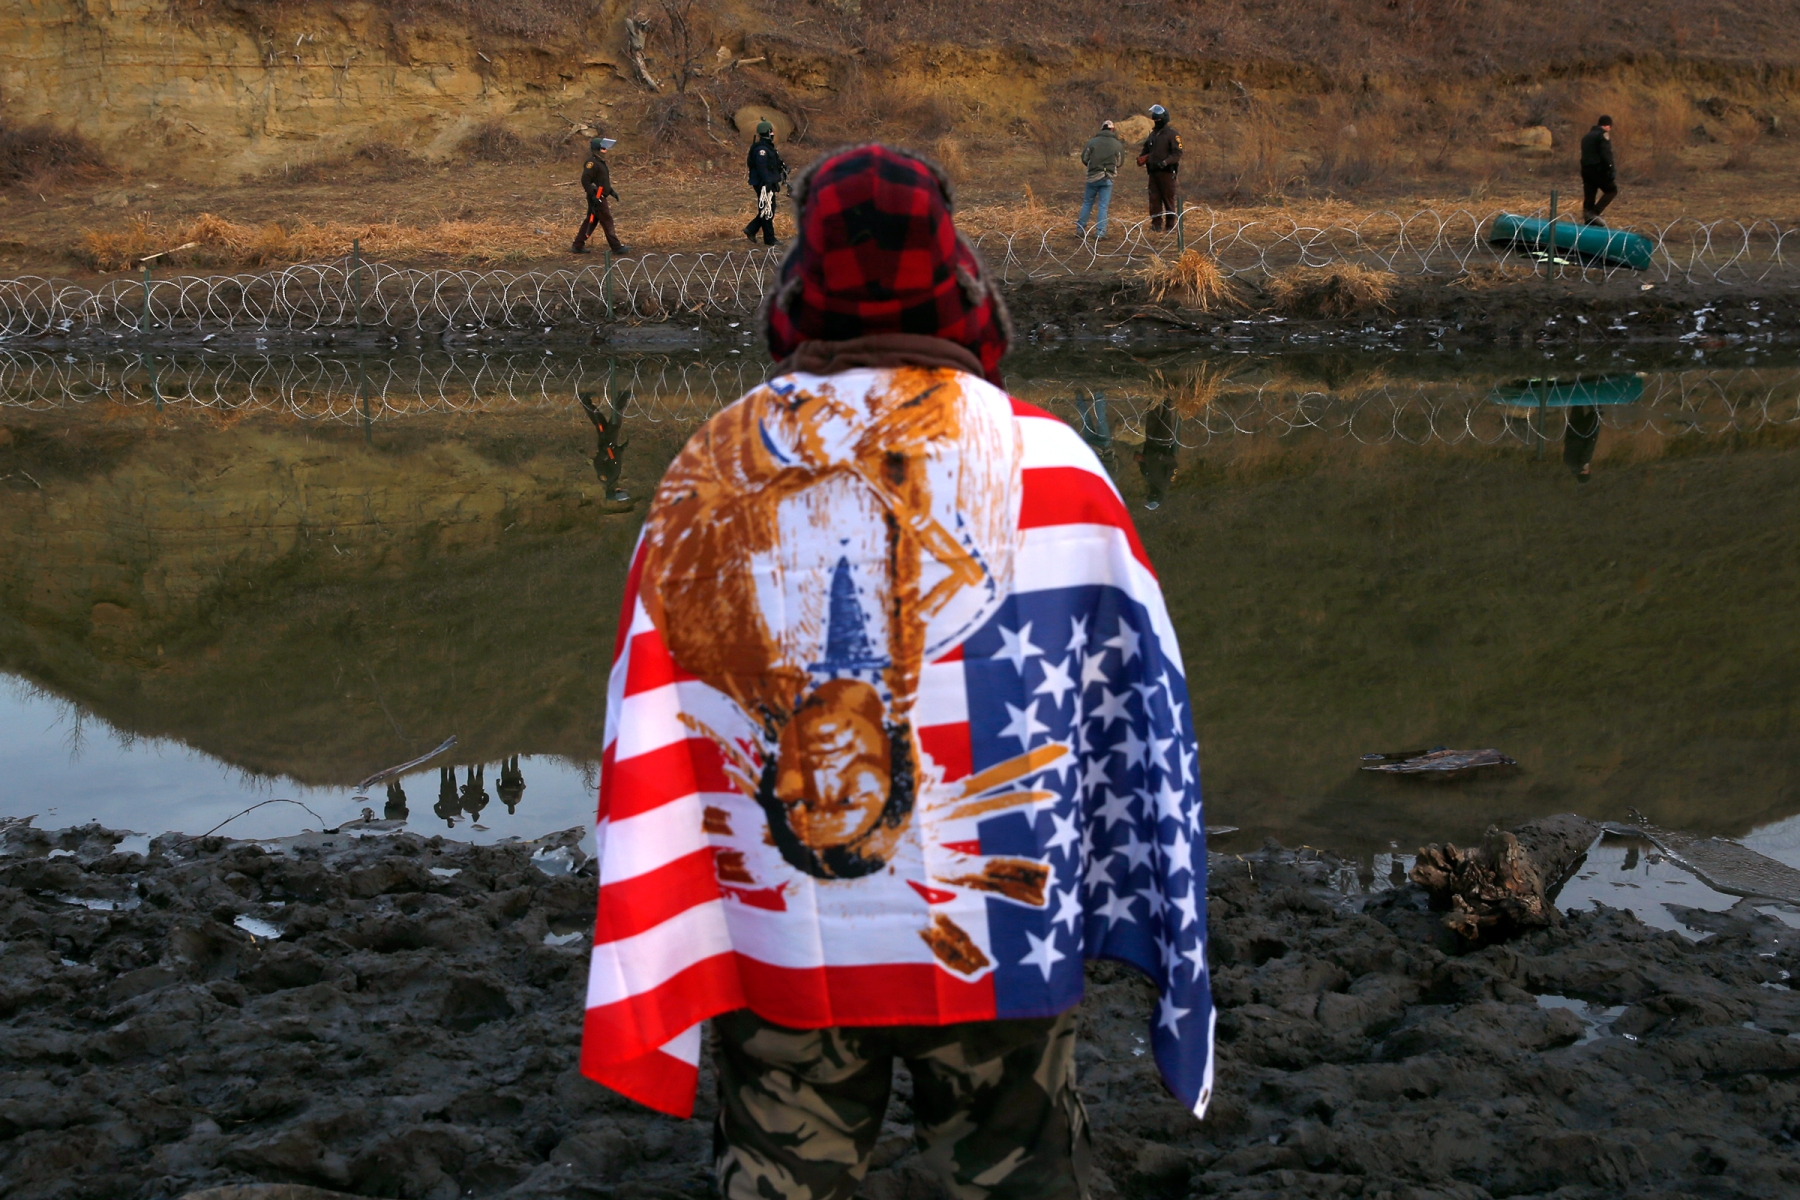 CANNON BALL, ND - NOVEMBER 25: A protester watches as police adjust barbed wire that they set up on Turtle Island a day after protesters built a bridge to access it in Cannon Ball, ND near Standing Rock on Nov. 25, 2016, during an ongoing dispute over the building of the Dakota Access Pipeline. (Photo by Jessica Rinaldi/The Boston Globe via Getty Images)